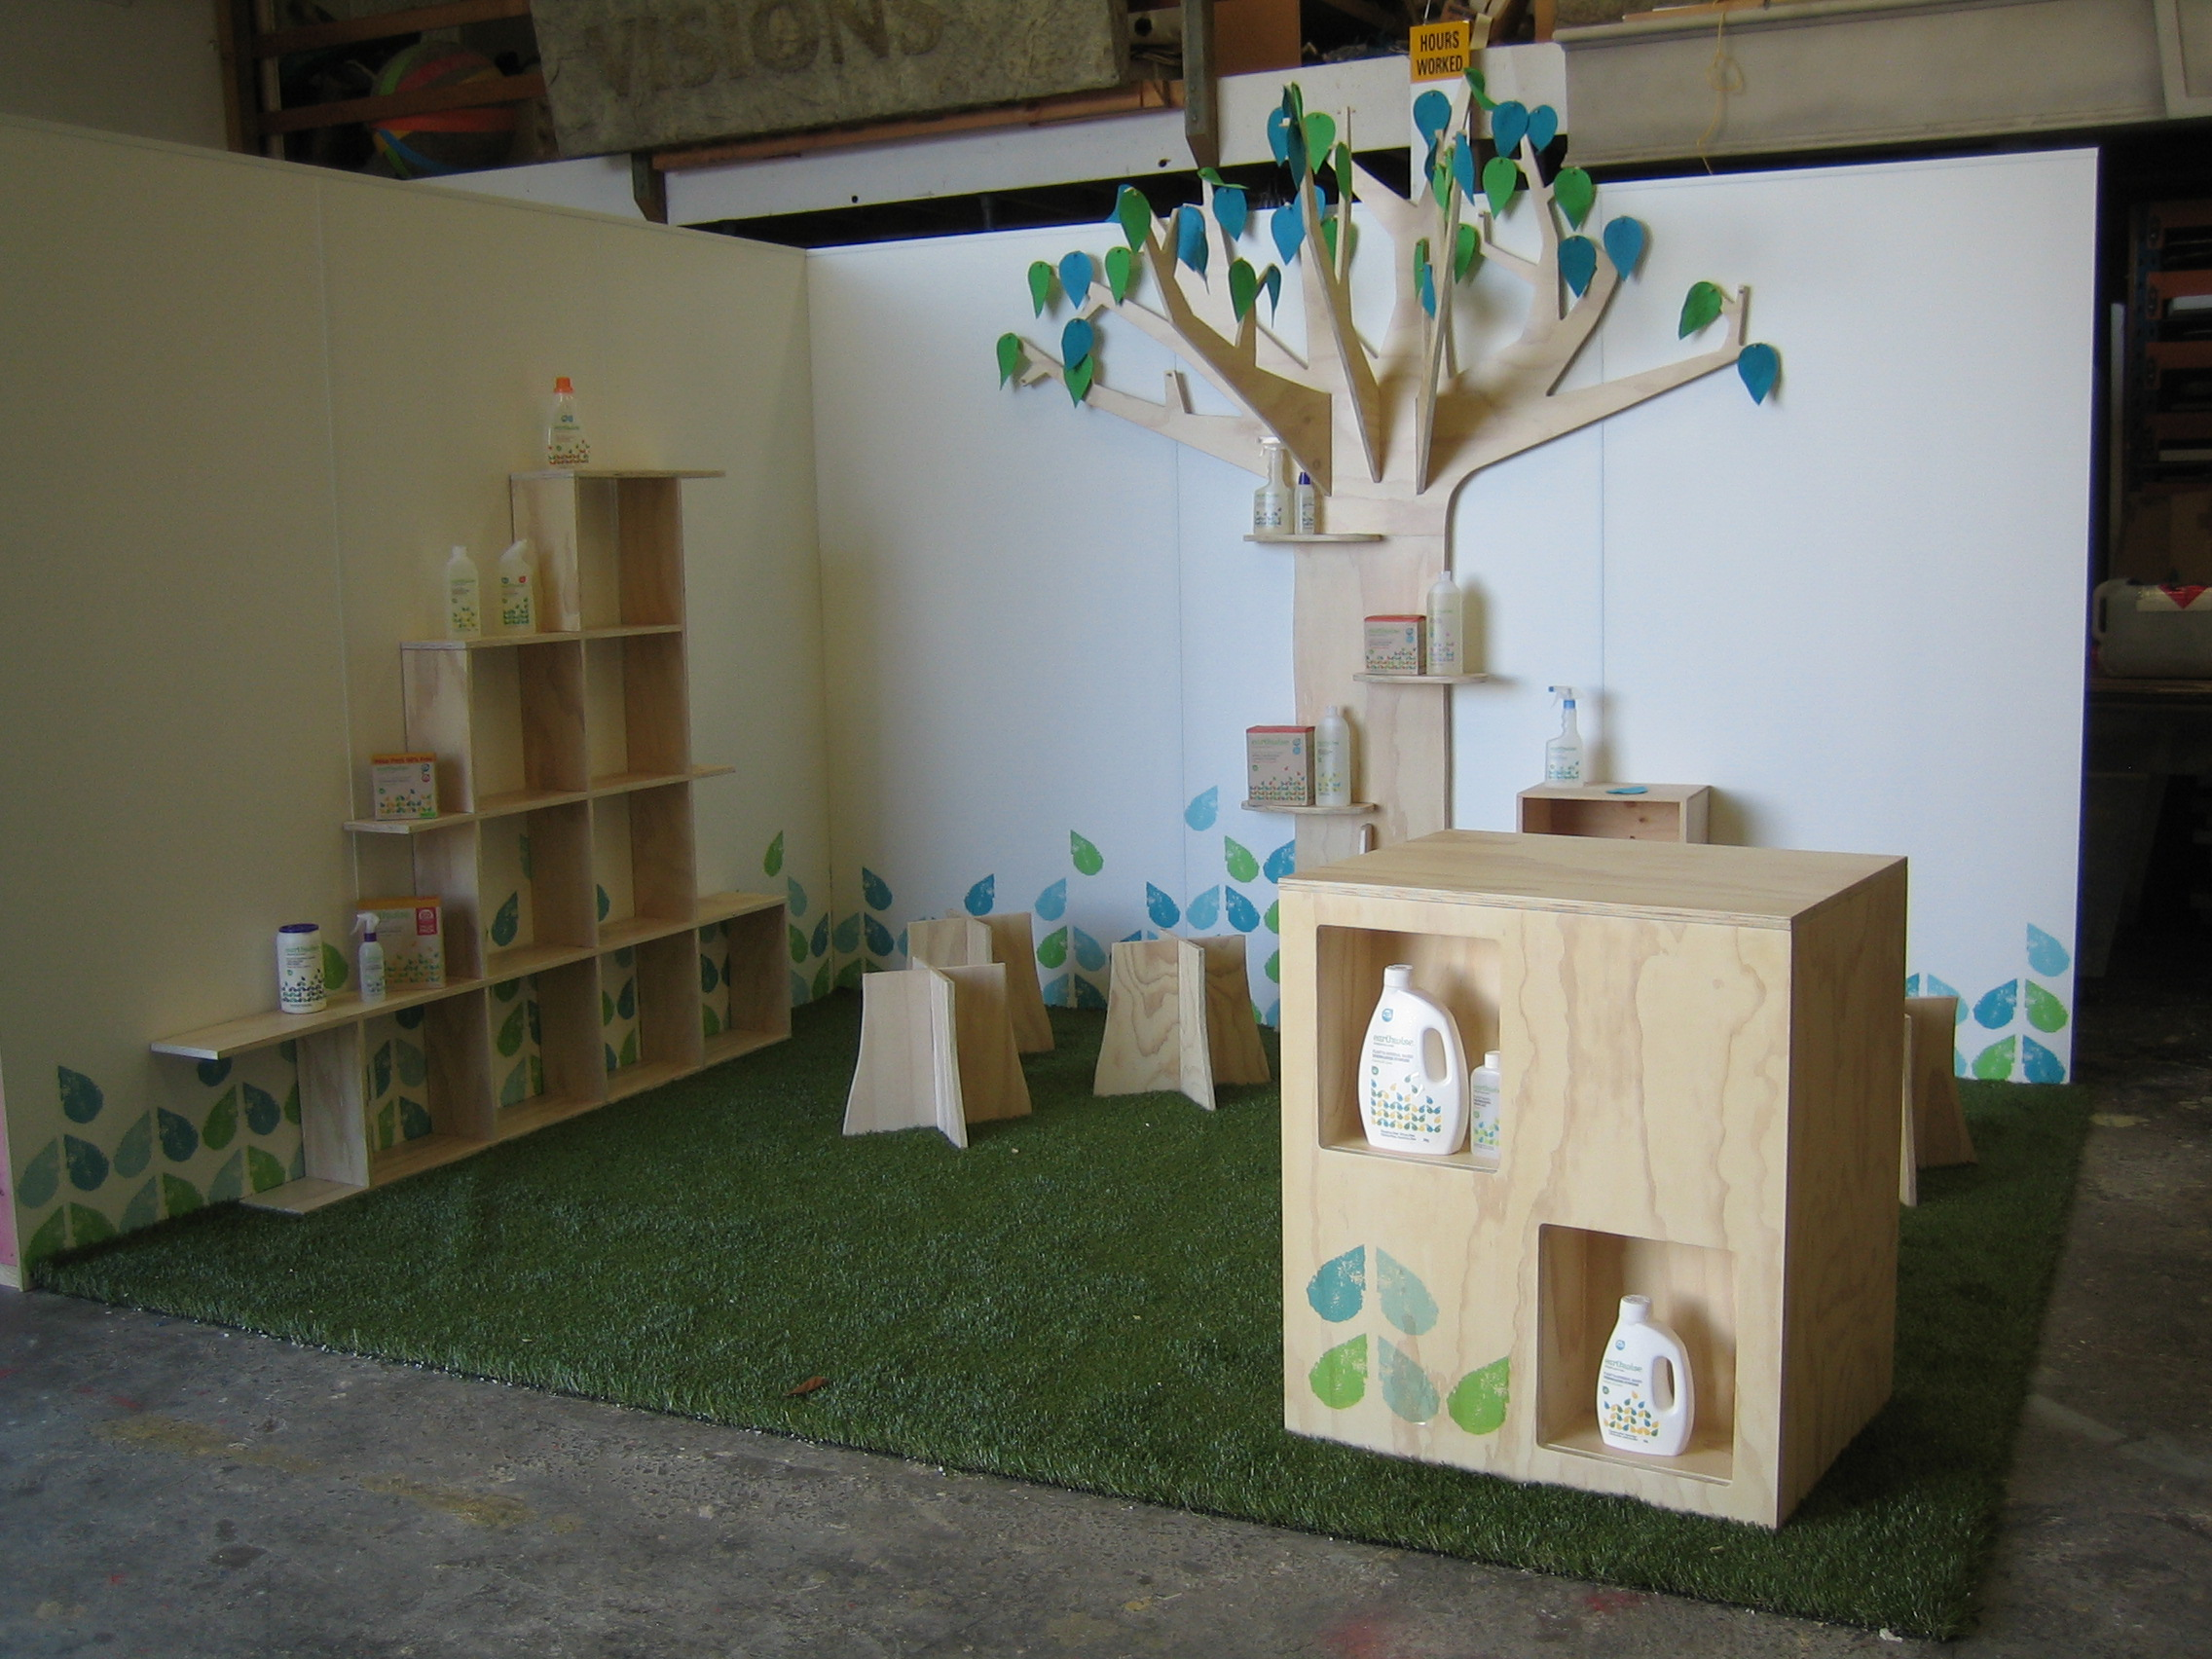 Earthwise stand